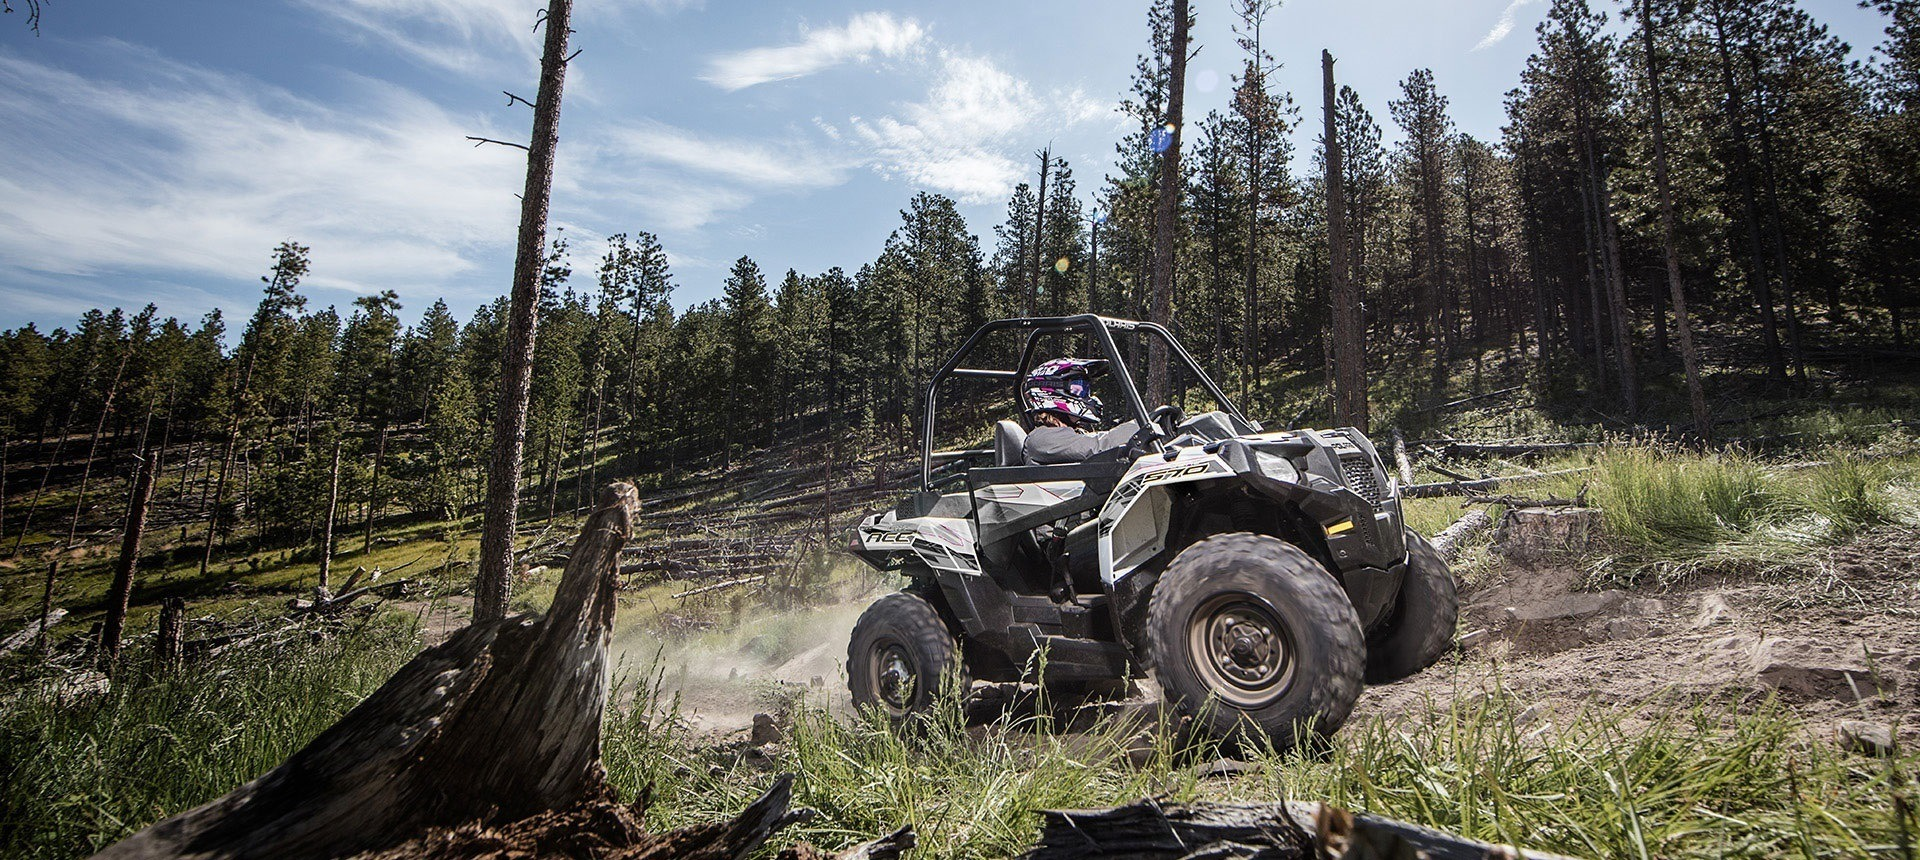 2019 Polaris Ace 570 EPS in Elma, New York